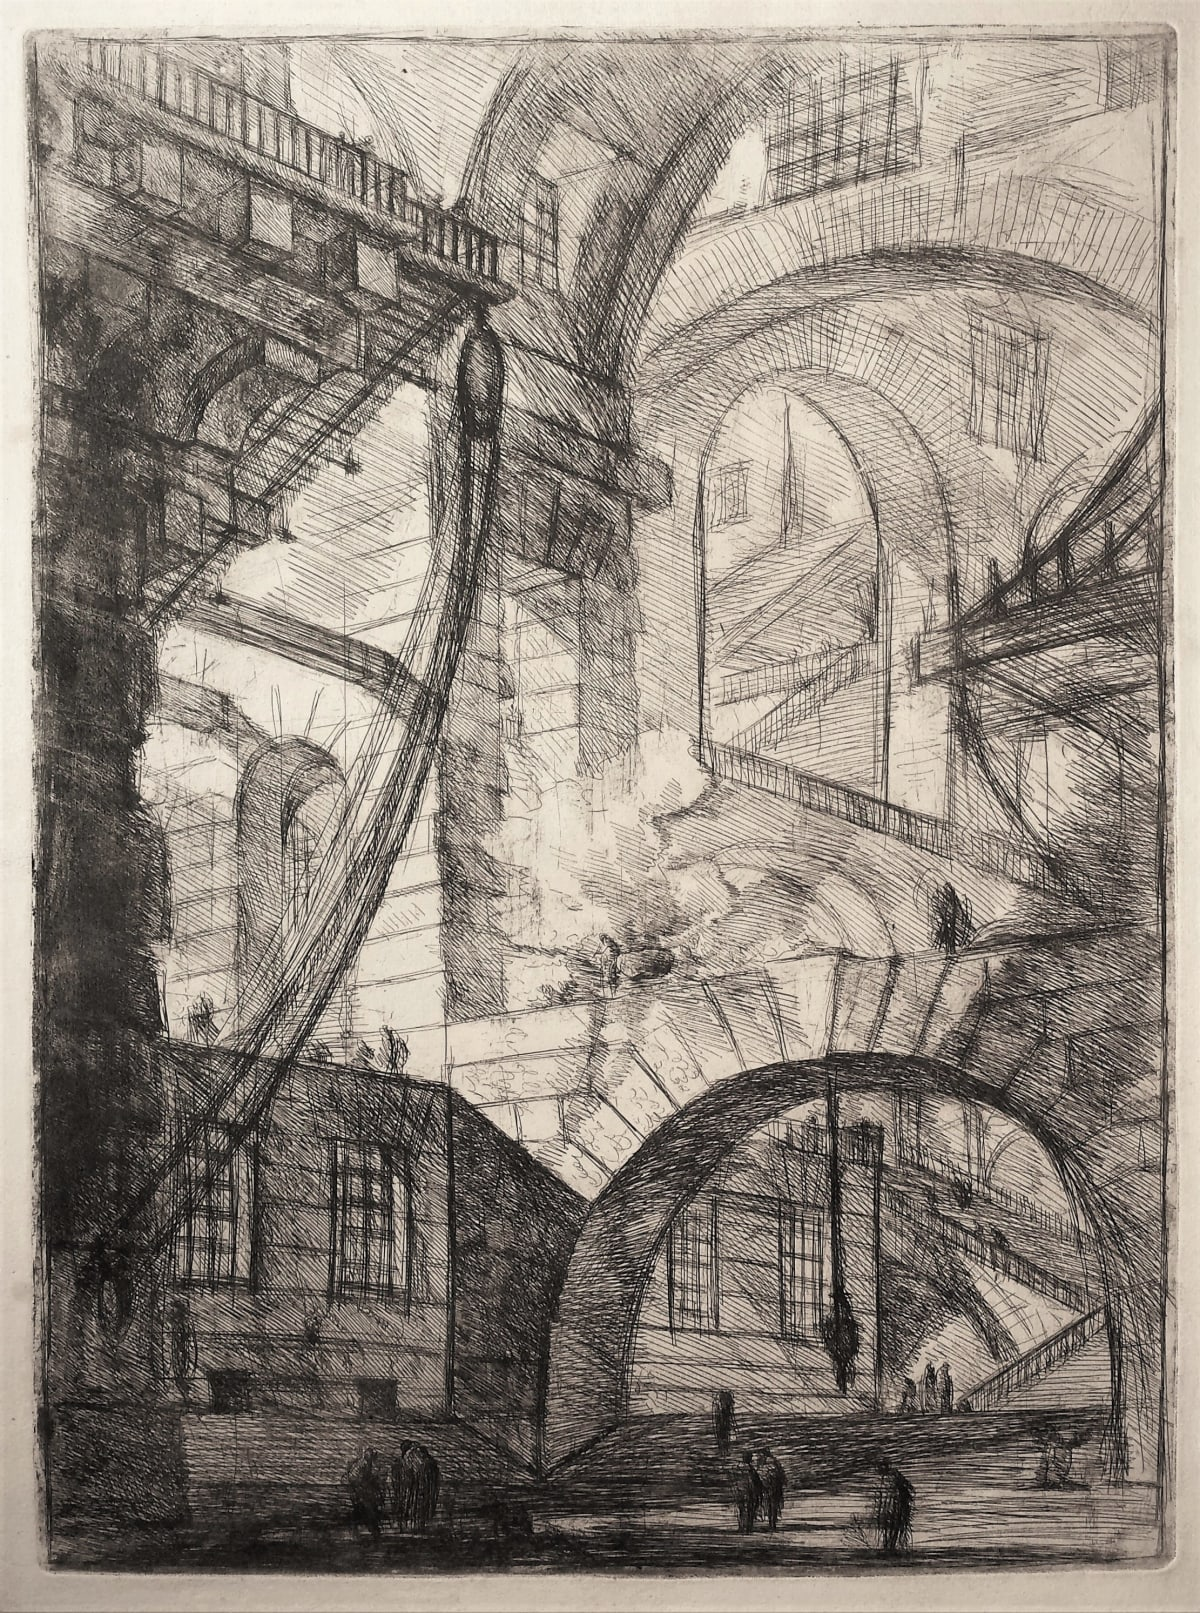 Giovanni Battista Piranesi, Perspective of Arches, with a Smoking Fire, 1749 Etching, engraving, sulphur tint or open bite, burnishing 54 x 40 cm Robison 32, 1st state (of 7), 1st edition (of 6) (1749-1760). Watermark: fleur-de-lys in a single circle. Plate VI of 'Carceri d'Invenzione' ['Imaginary prisons'] or 'Invenzioni capric. di carceri' ['Fanciful Images of Prisons'].